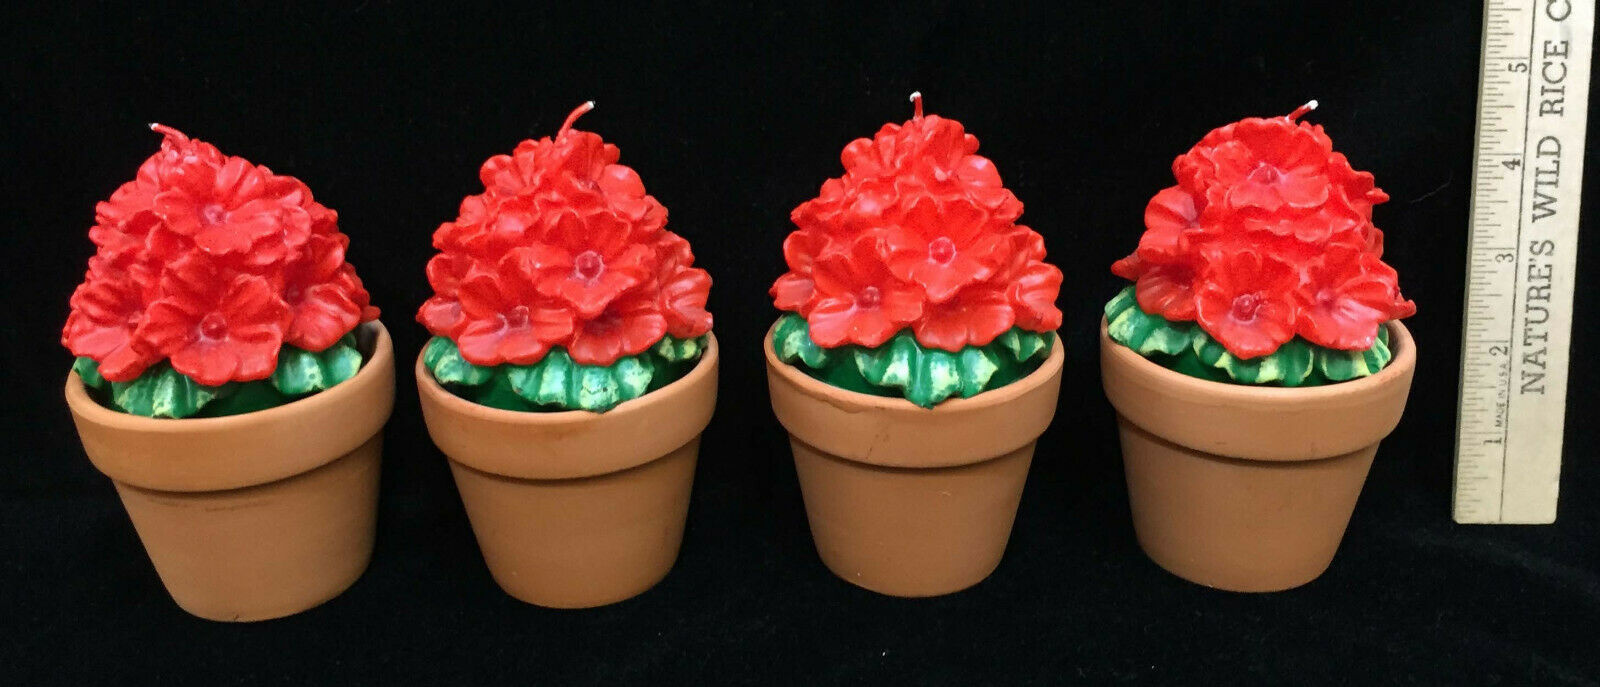 Primary image for Candles Set 4 Terra Cotta Pots Floral Flower Shaped Bush Plants Red Decorative